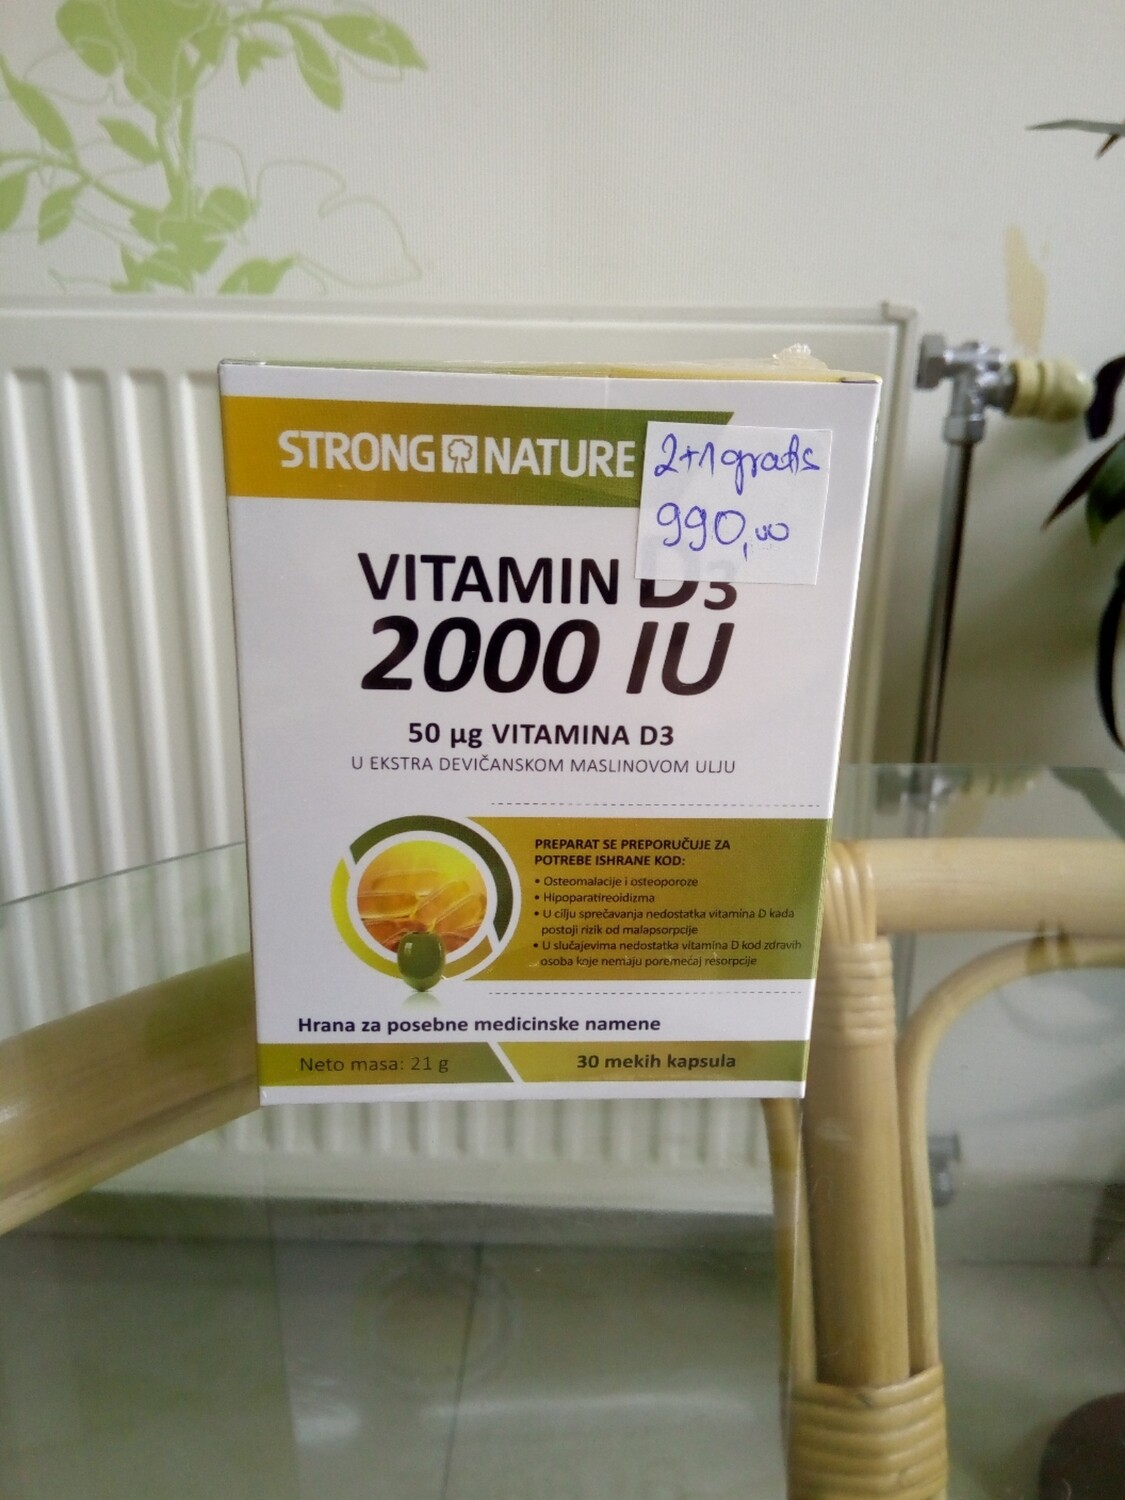 Vitamin D3 2000IU  30 mekih kapsula (2 + 1 gratis)- Strong Nature